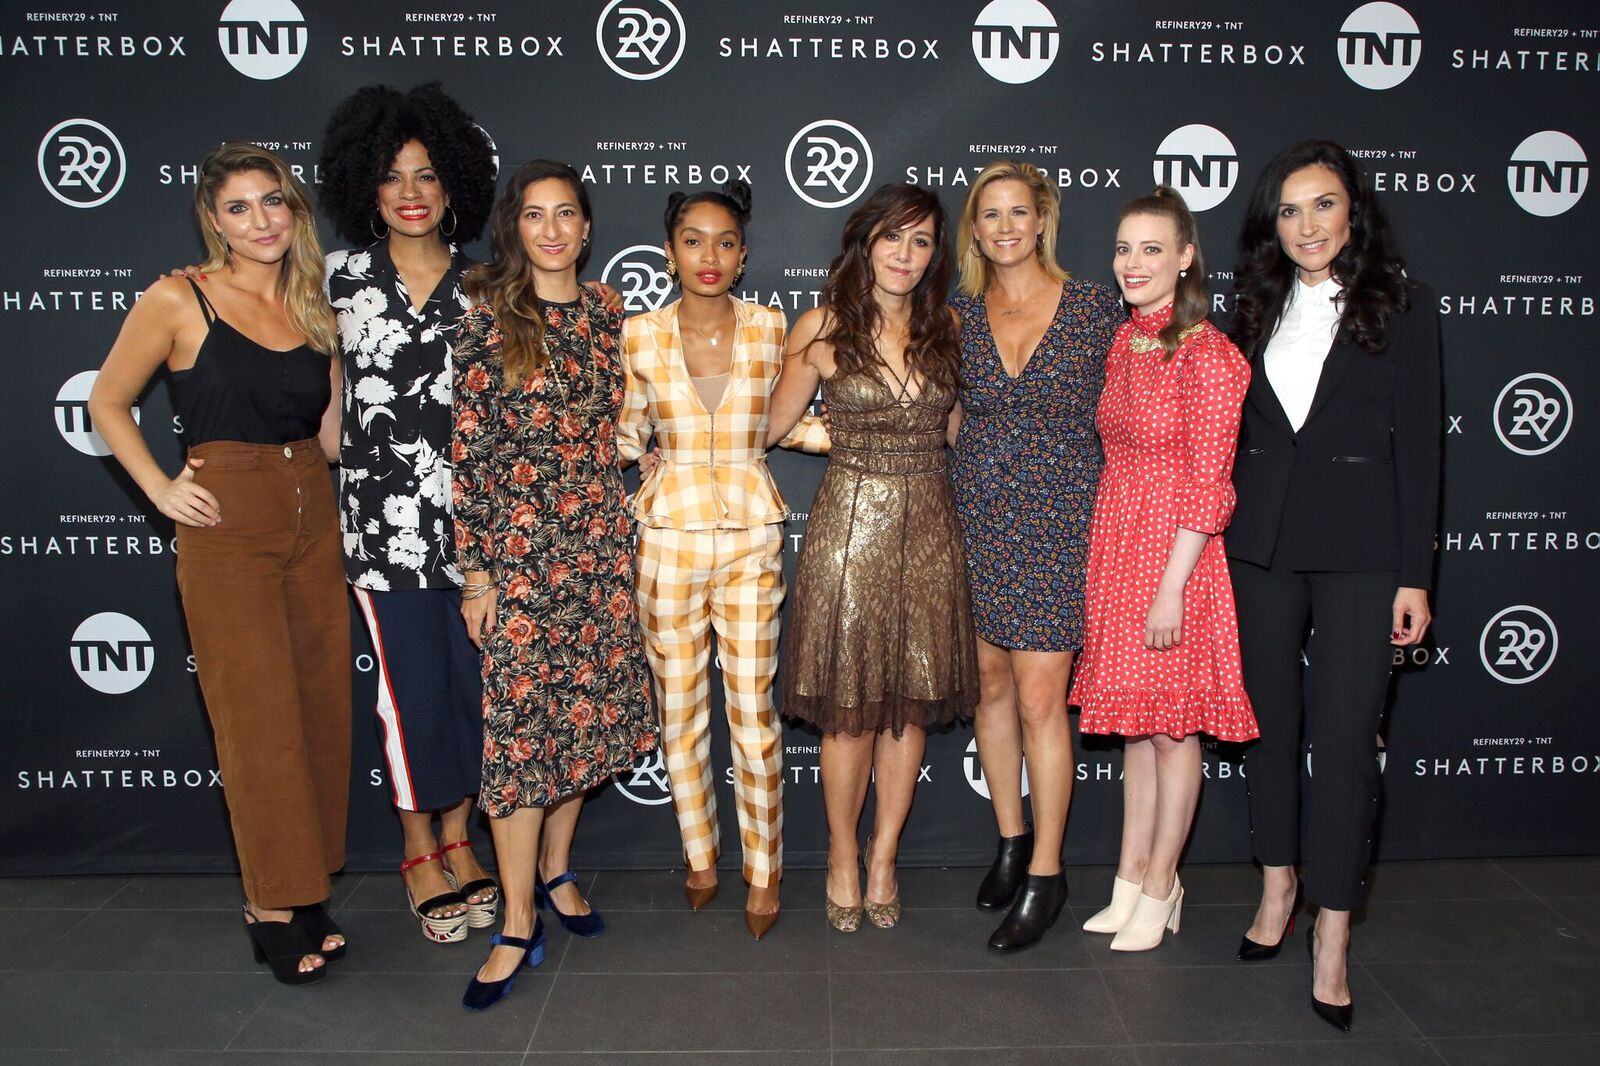 TORONTO FILM FESTIVAL PREMIERE! With Shatterbox on TNT and RefinERY29 -